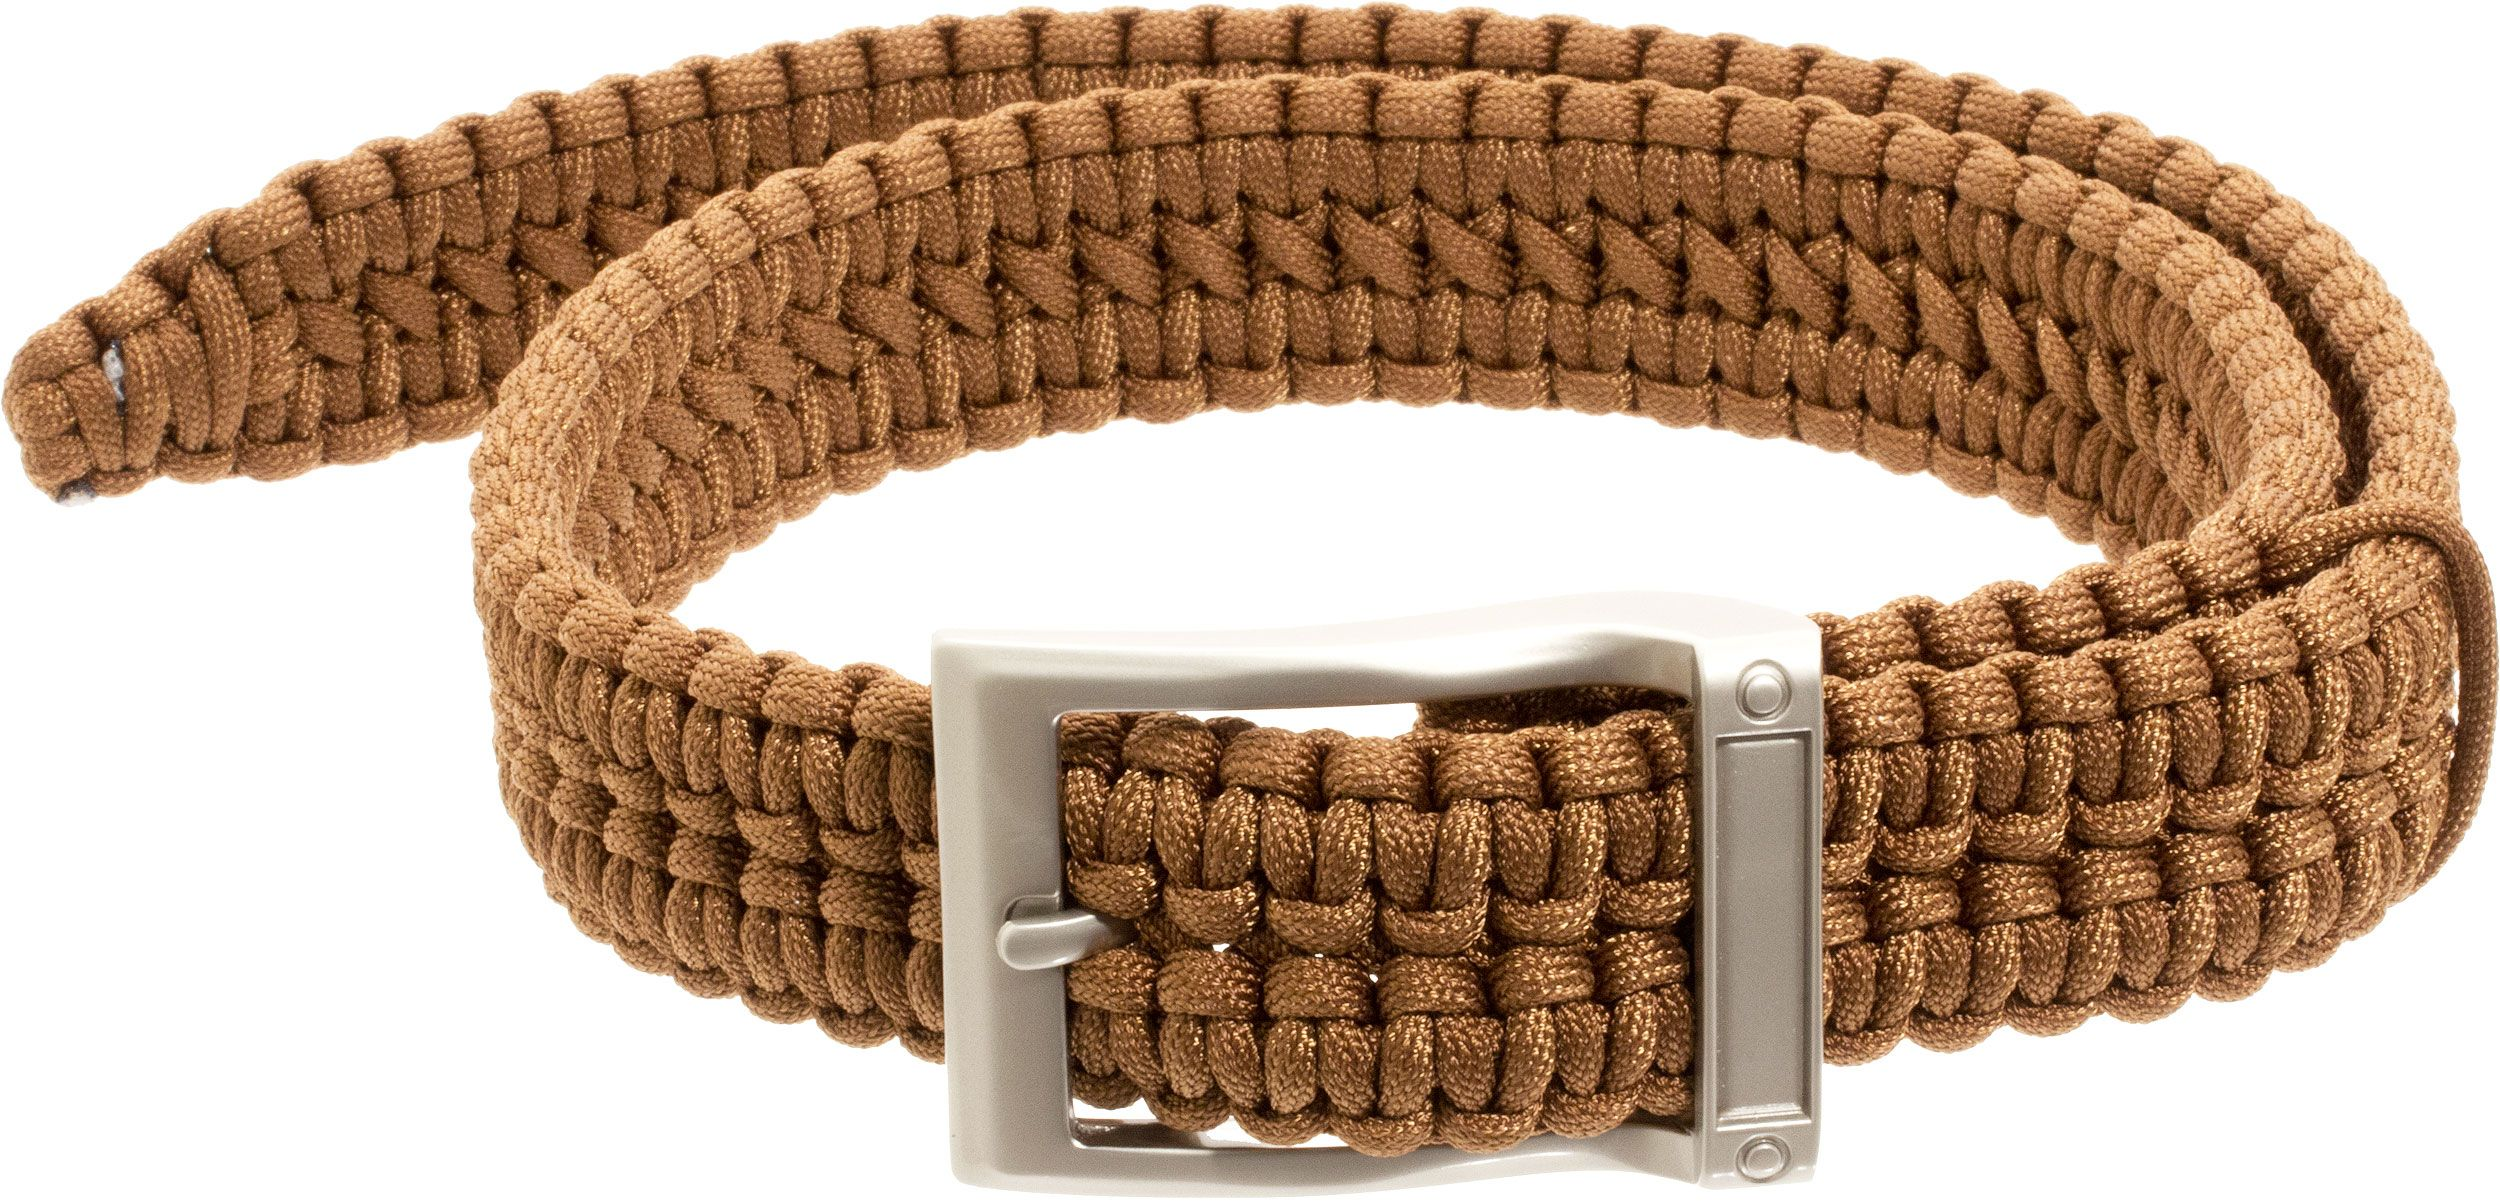 Timberline Paracord Survival Belt, Coyote, Small (5105)